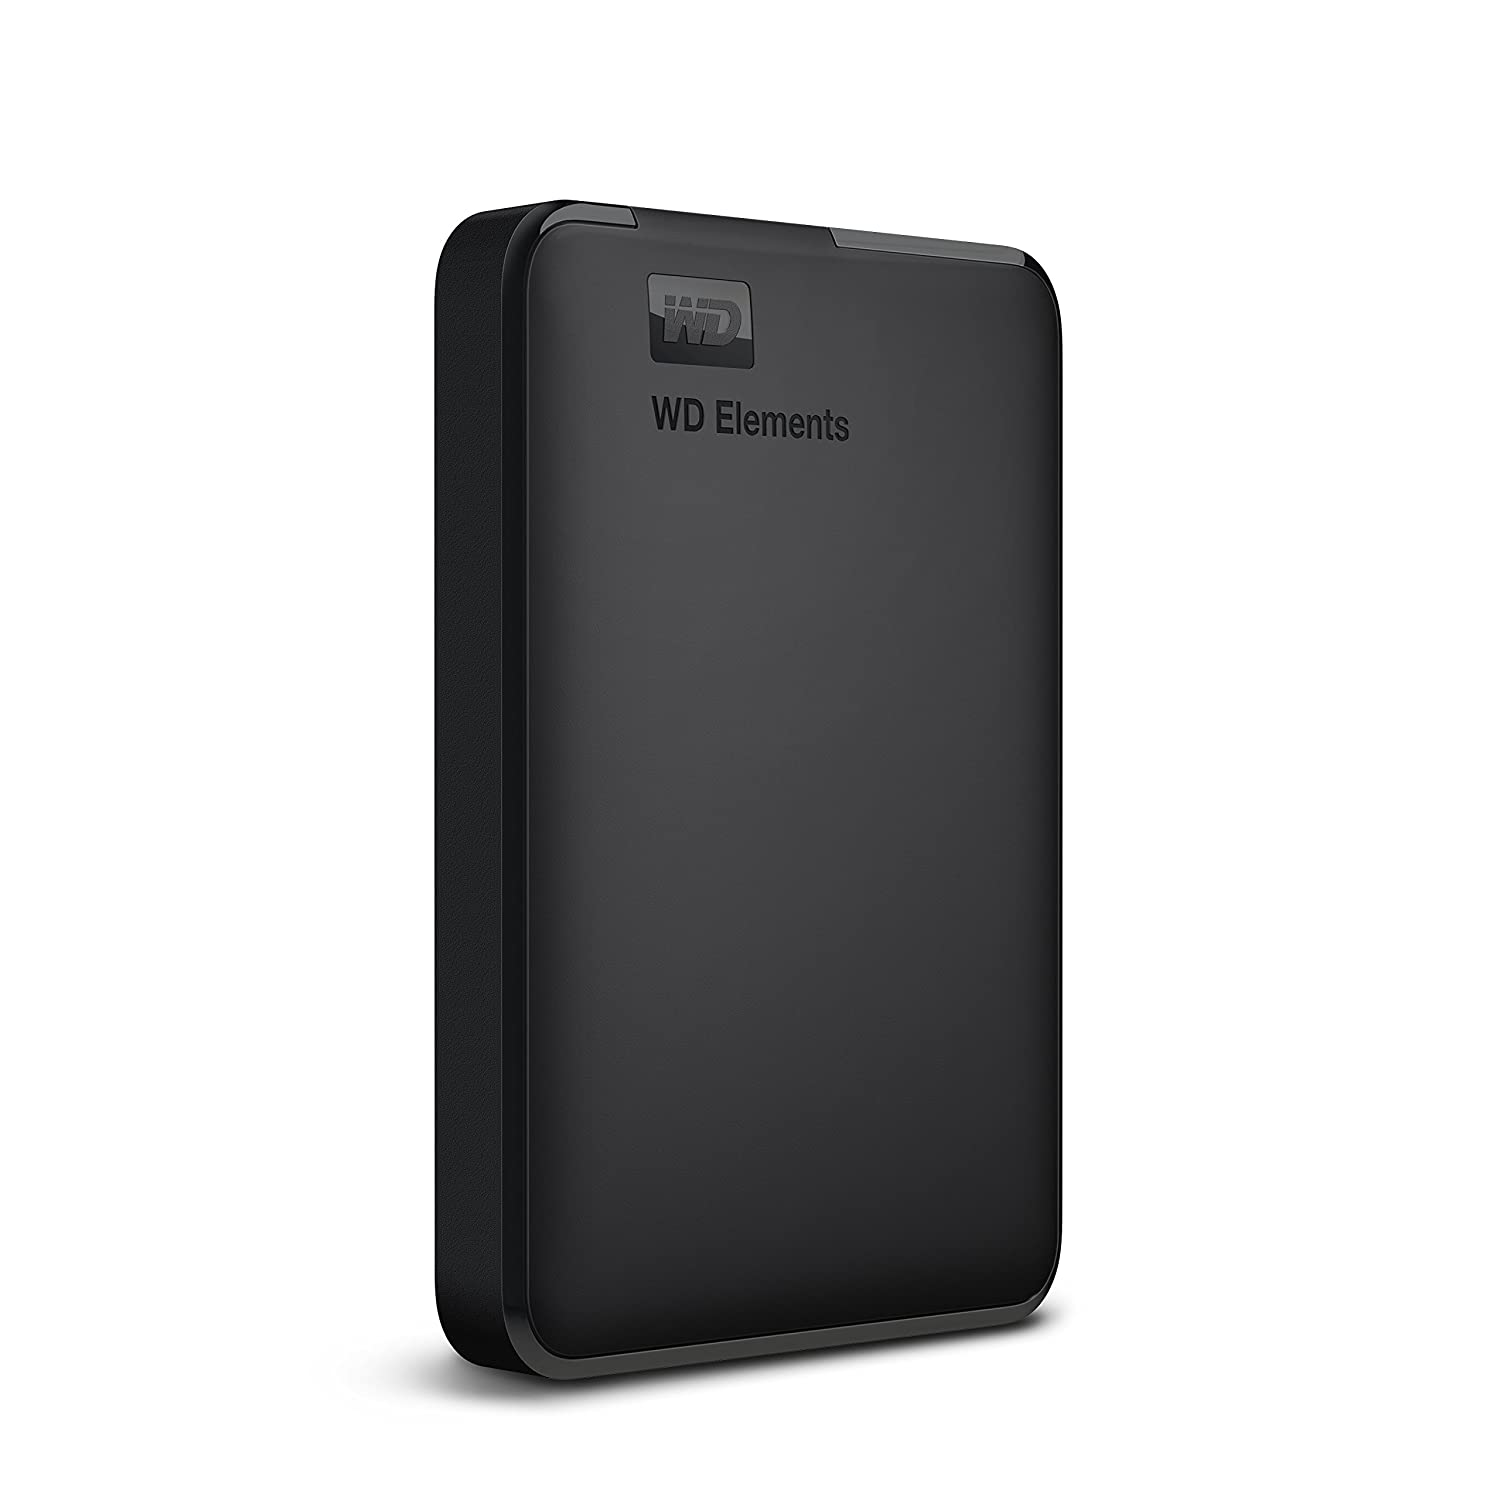 Western Digital 1.5 TB External Hard Drive